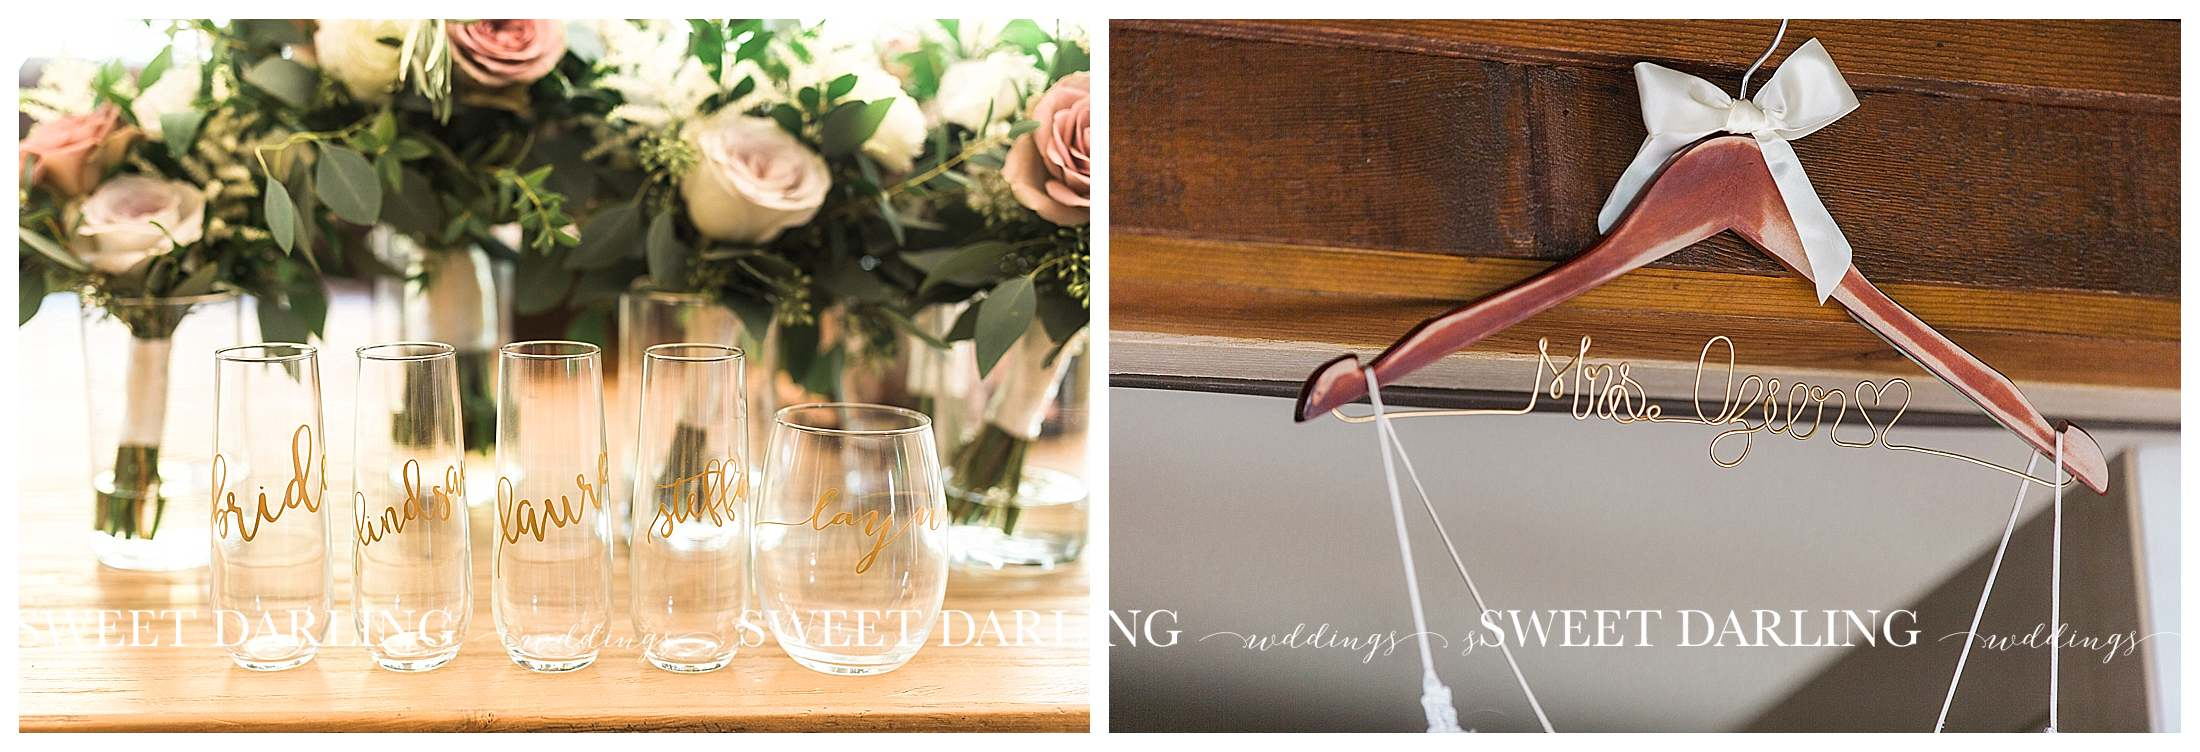 Wedding details in house at Pear Tree Estate